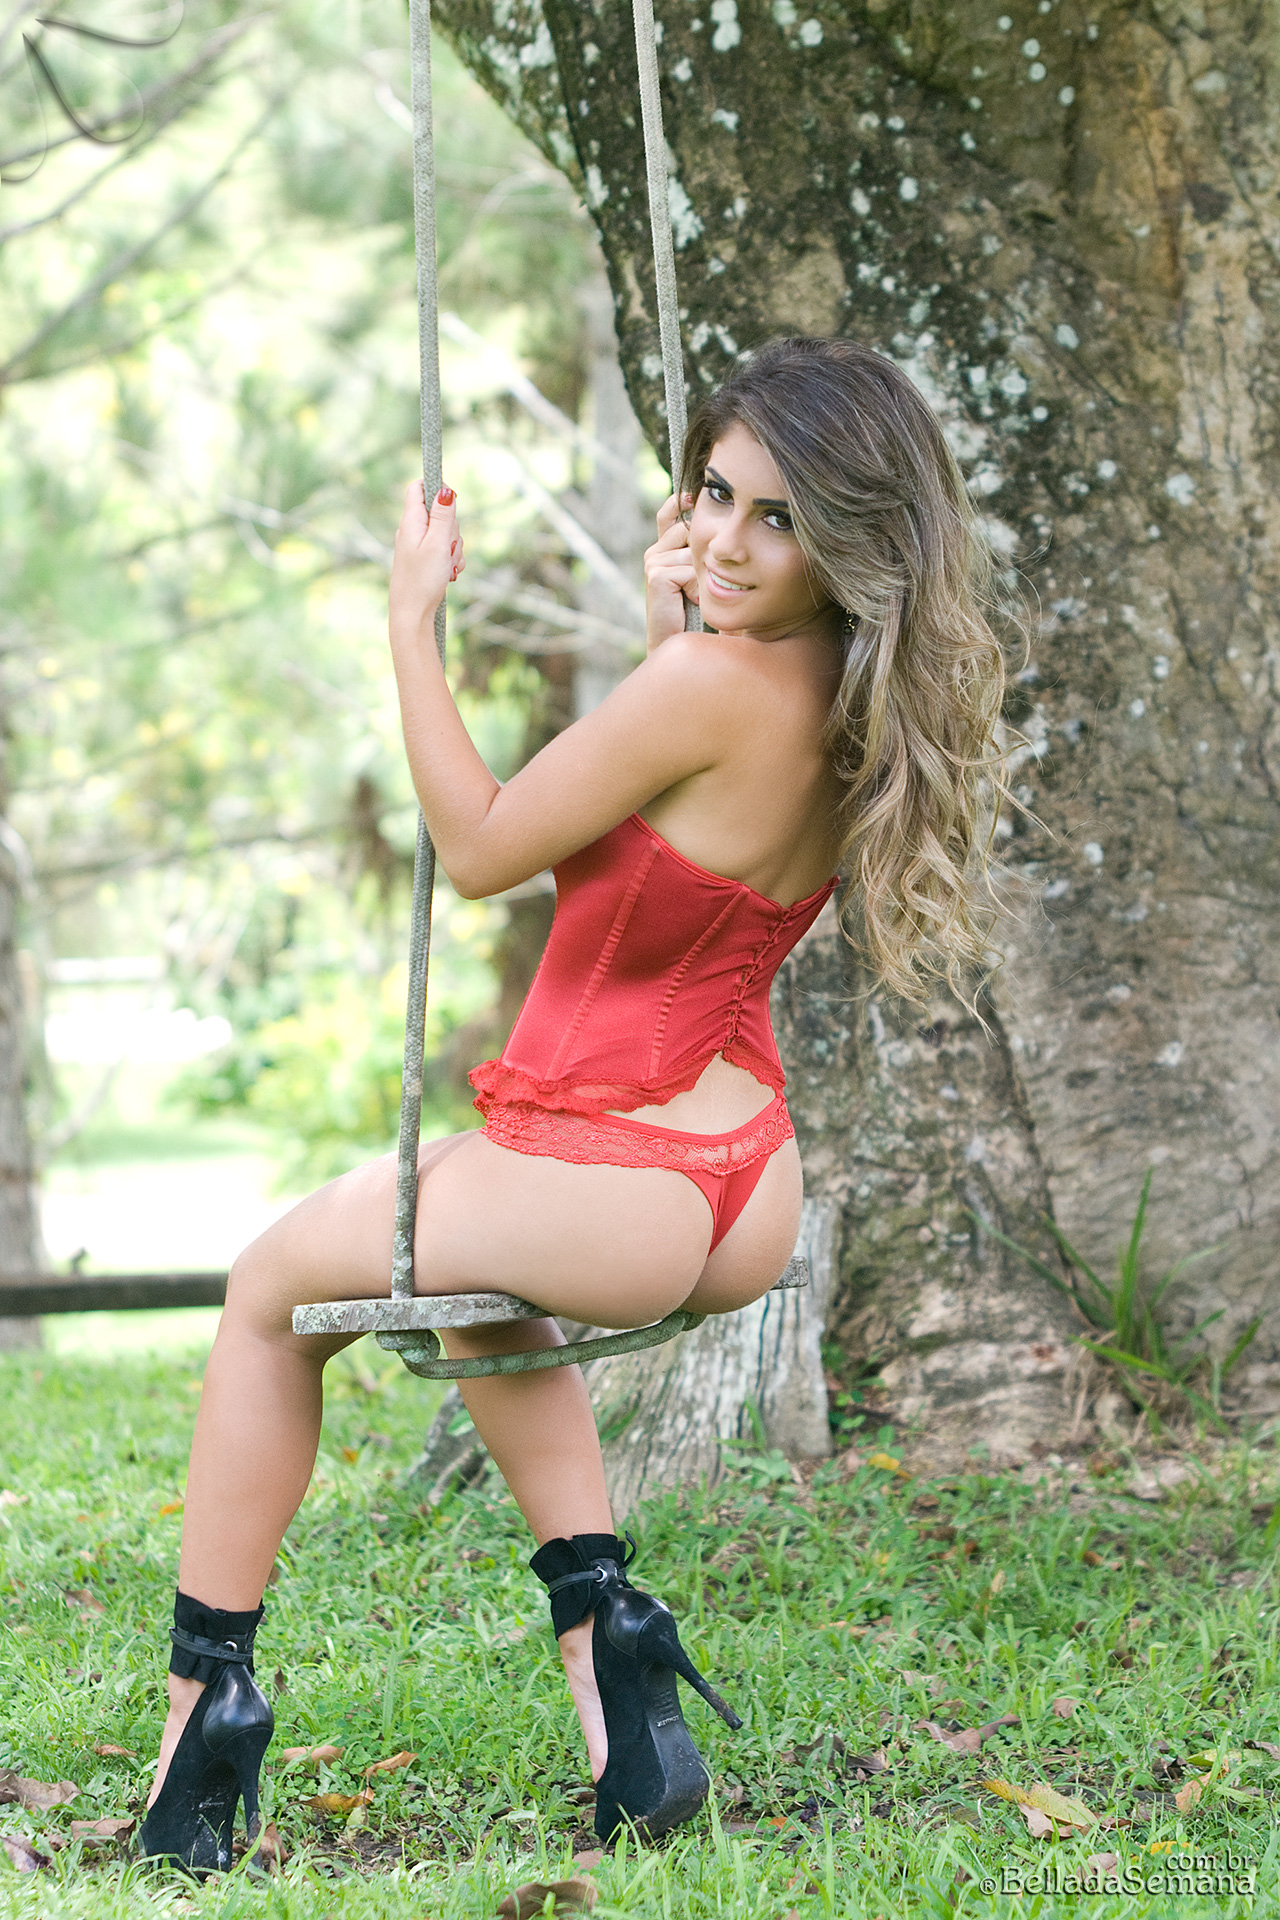 Alessandria love gender female is new up and